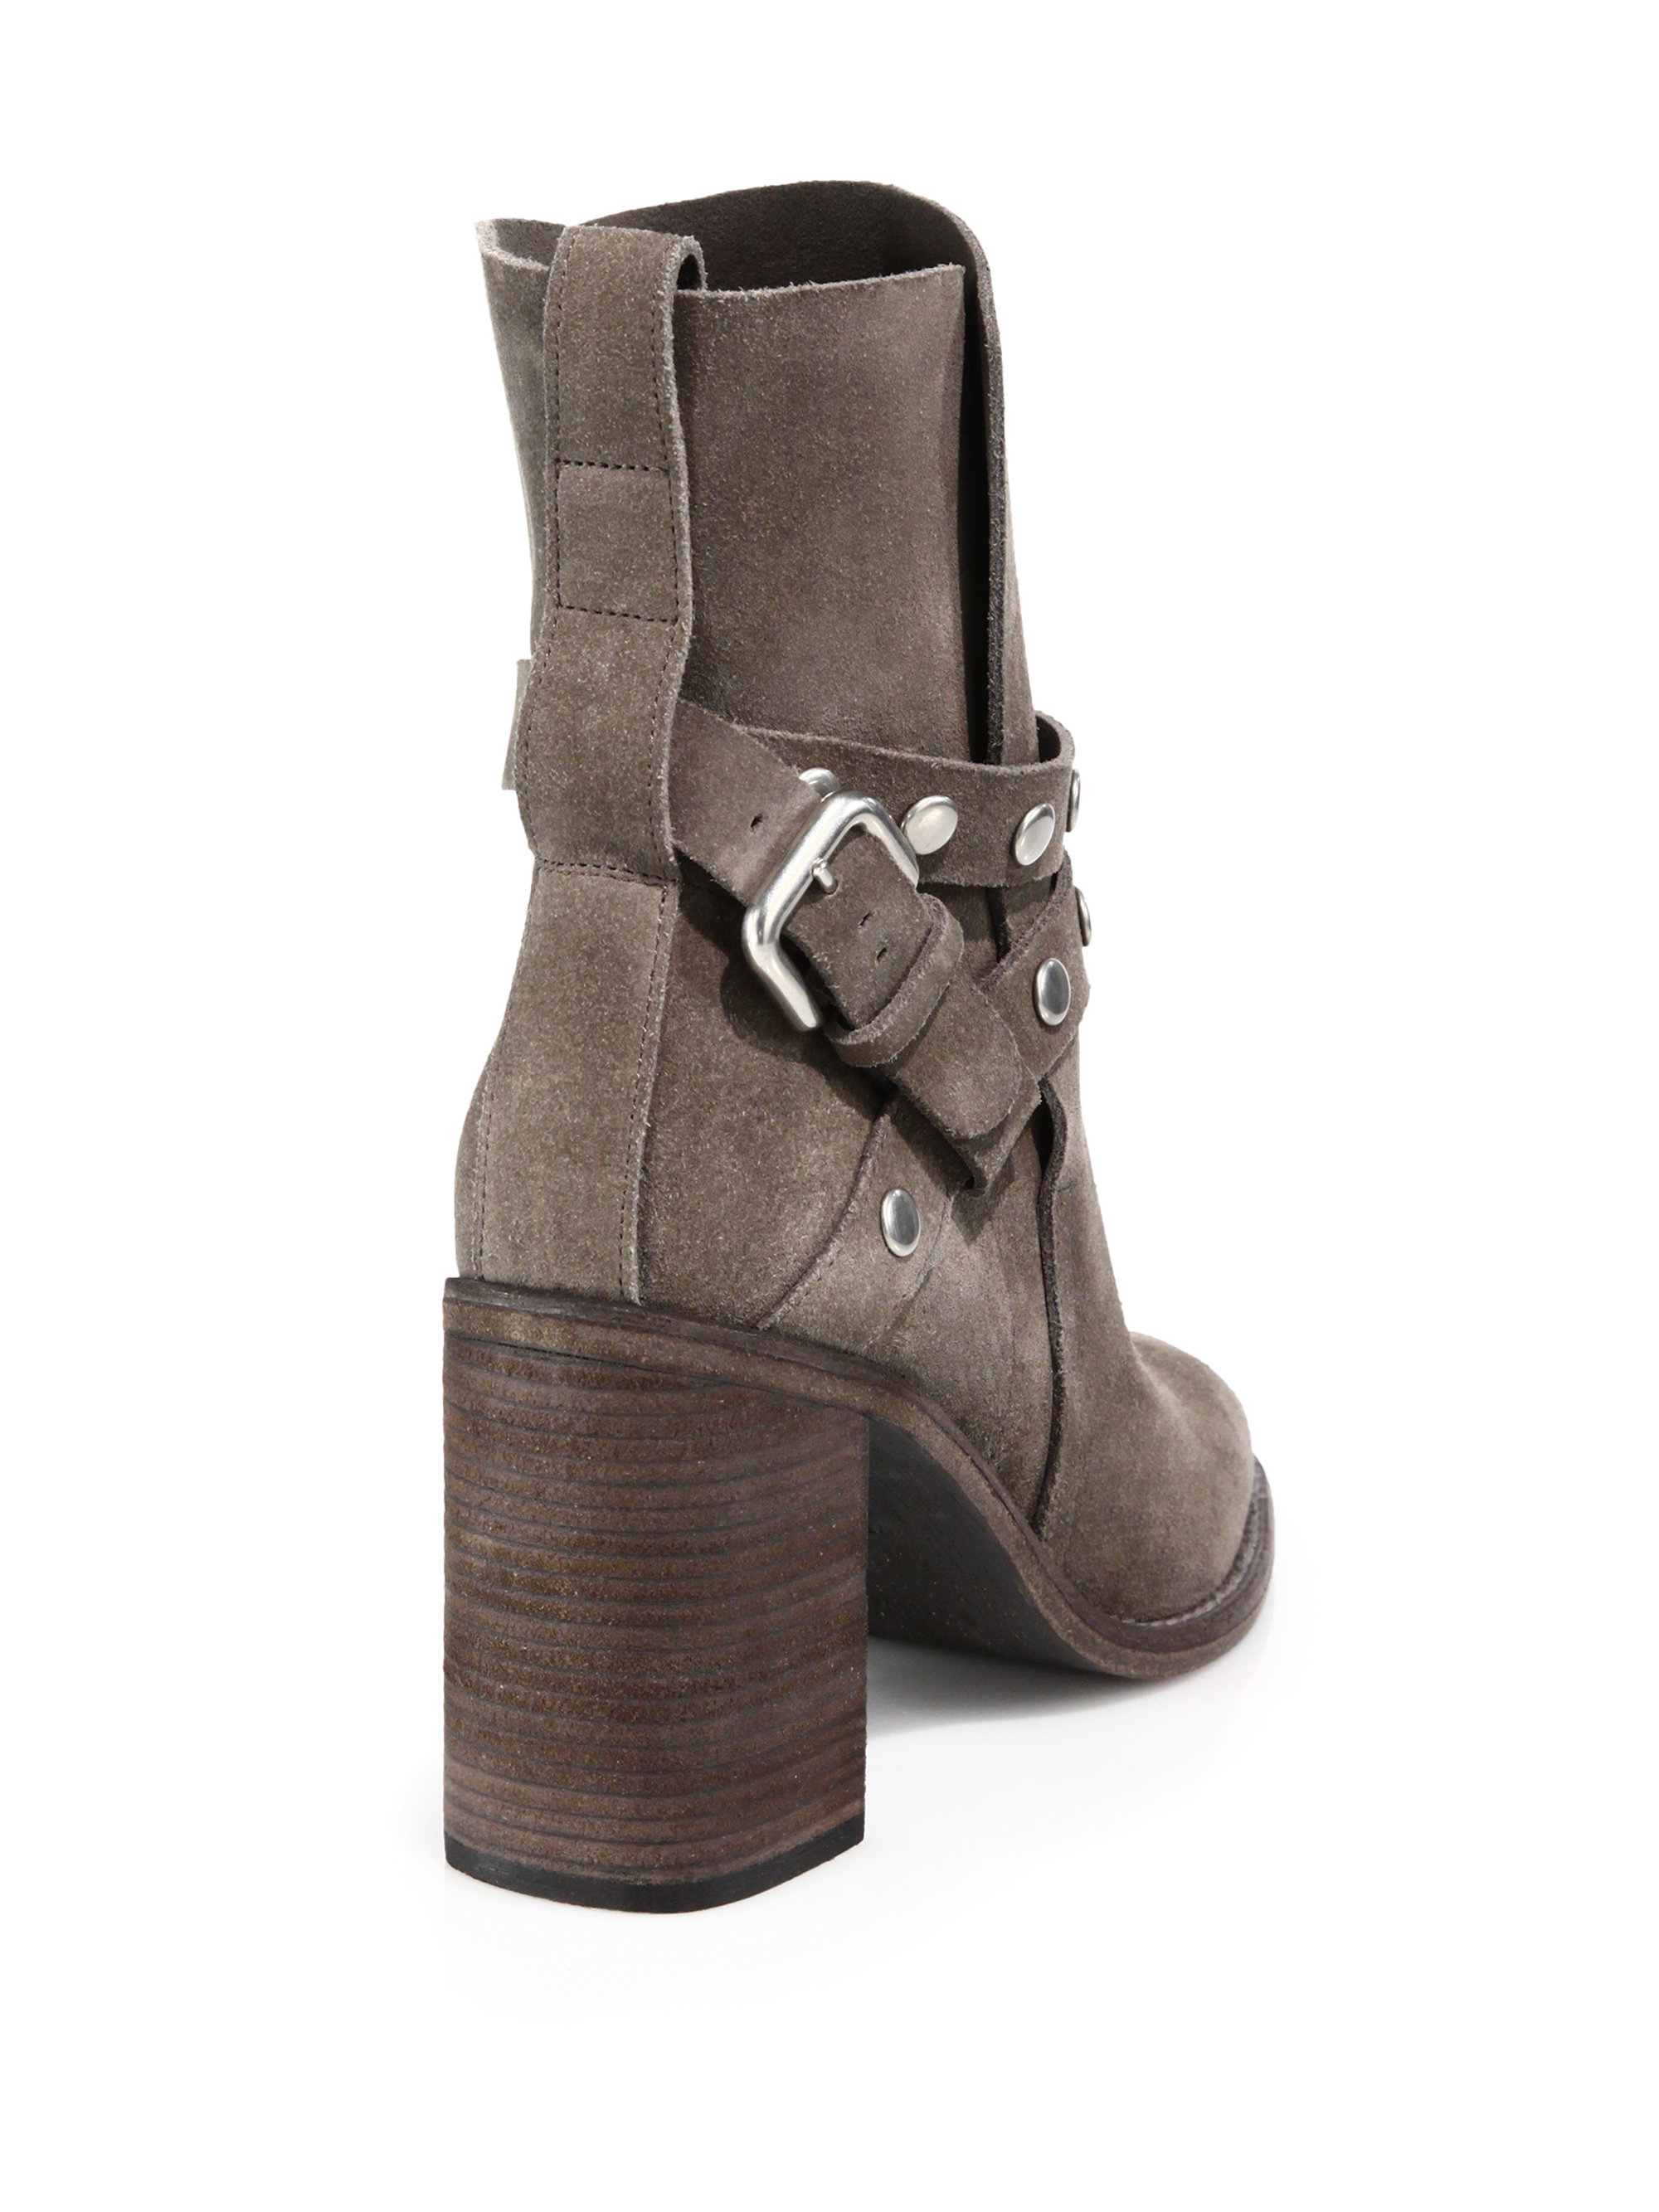 4393bee4387 see-by-chloe-grey-janis-studded-suede-ankle-boots -gray-product-1-018101010-normal.jpeg